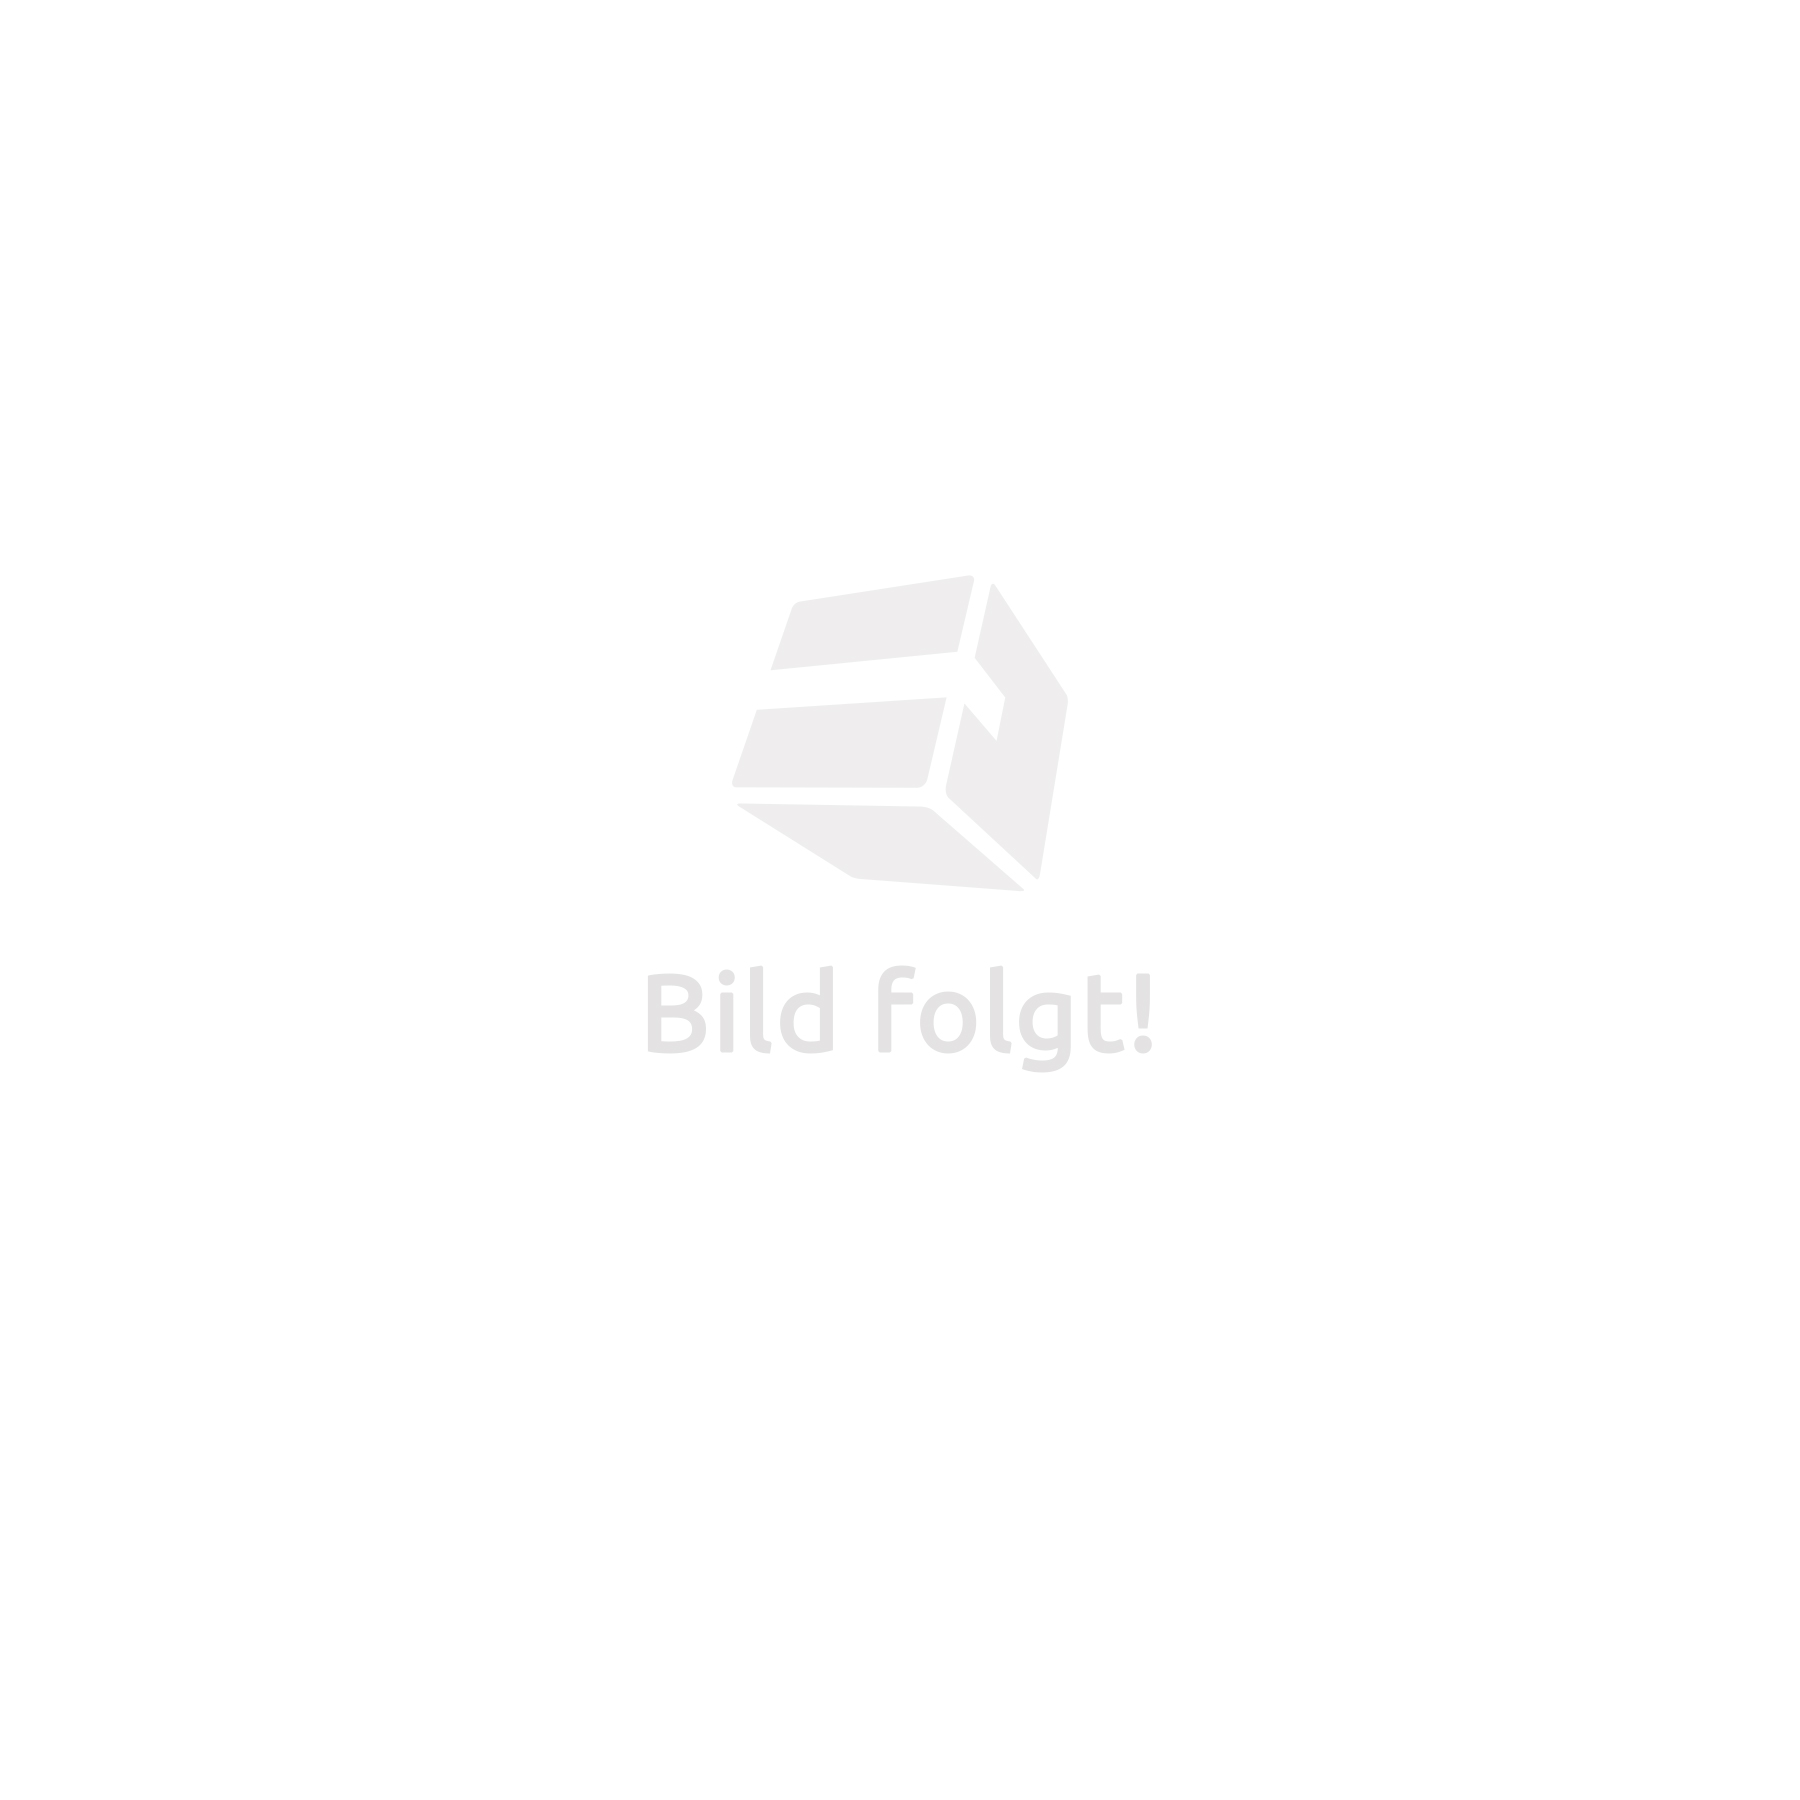 Tente de Camping 2 Places POP UP, Tente Imperméable